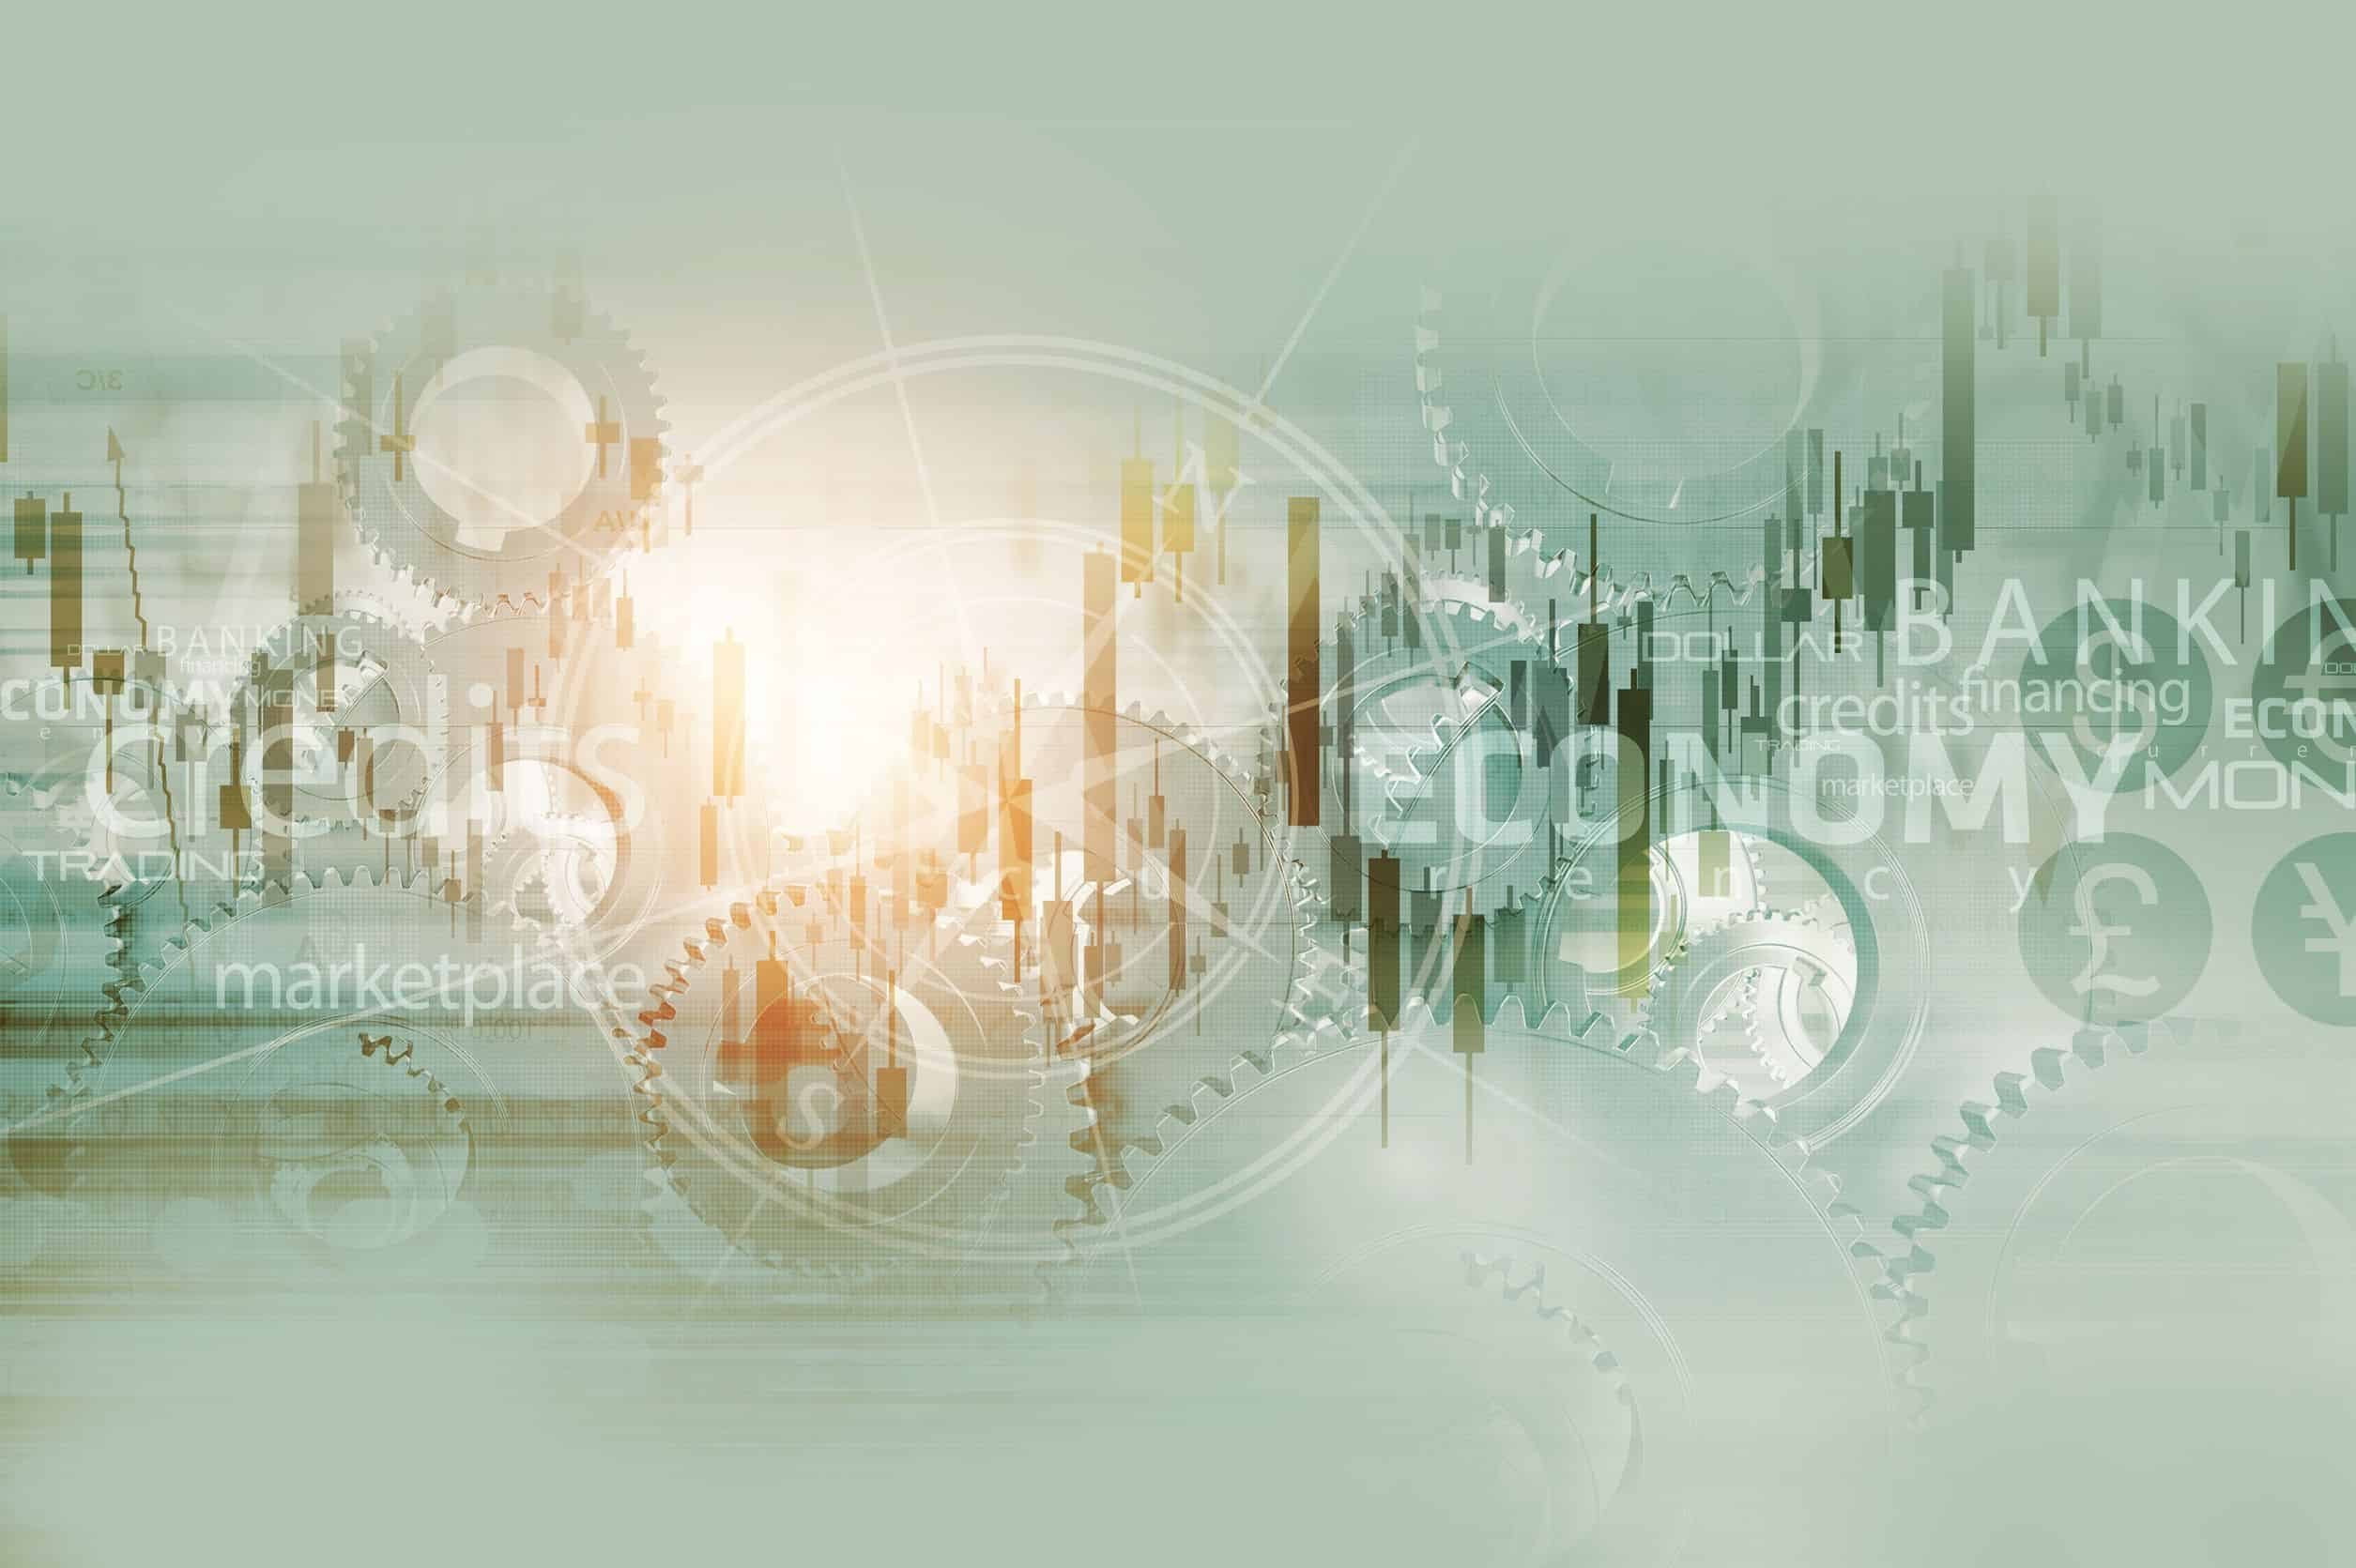 51611863 - global economy abstract background. world economy mechanism conceptual background illustration with trading stats, compass rose and some mechanisms.